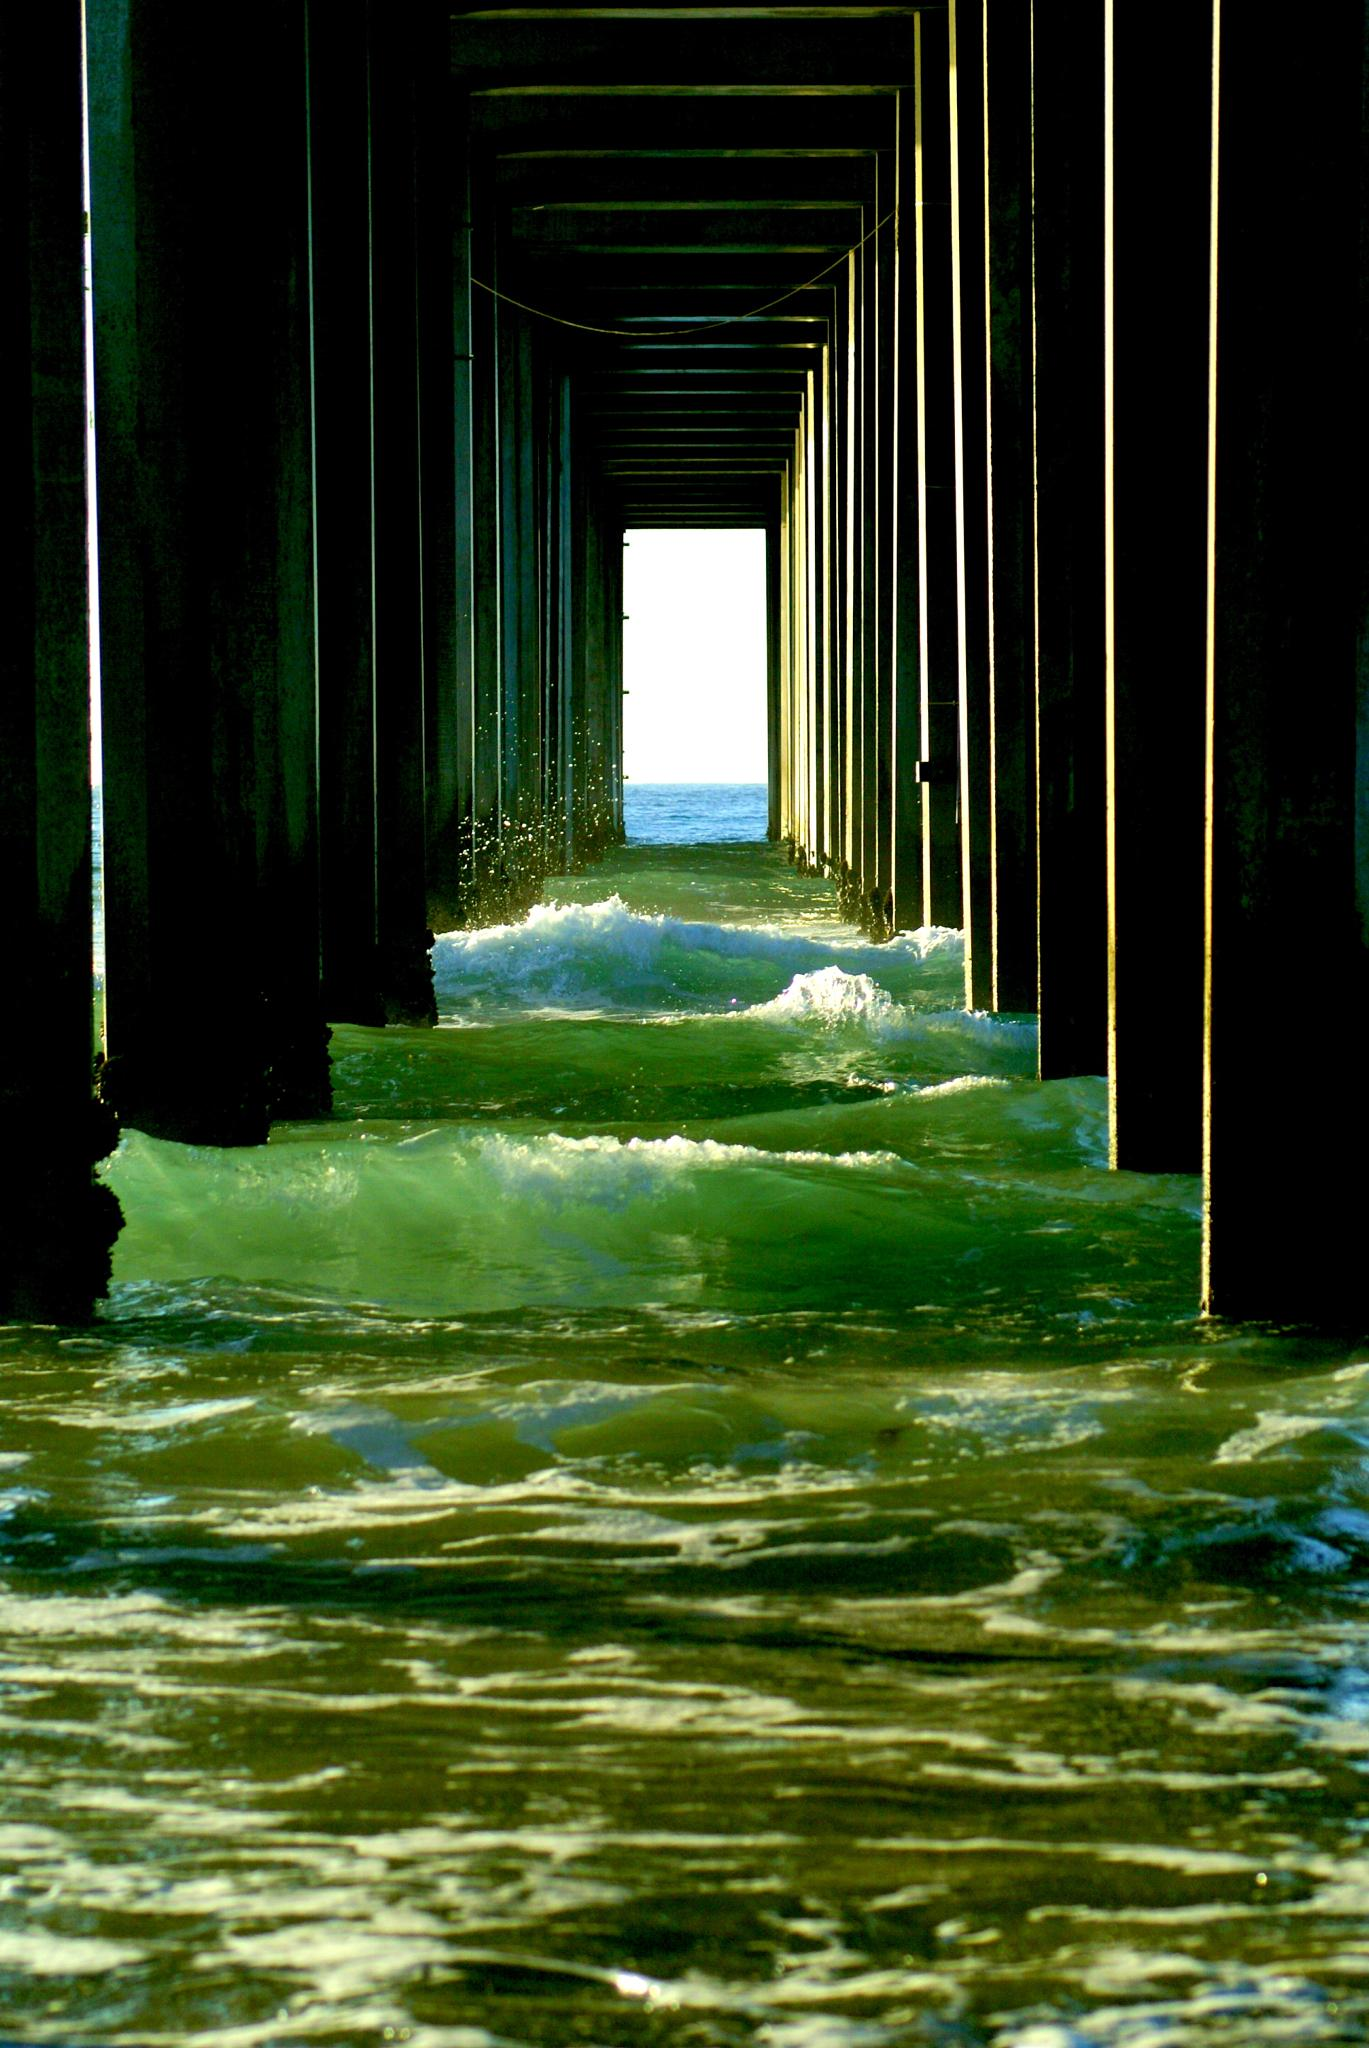 Under the pier by shawna.morgan.7